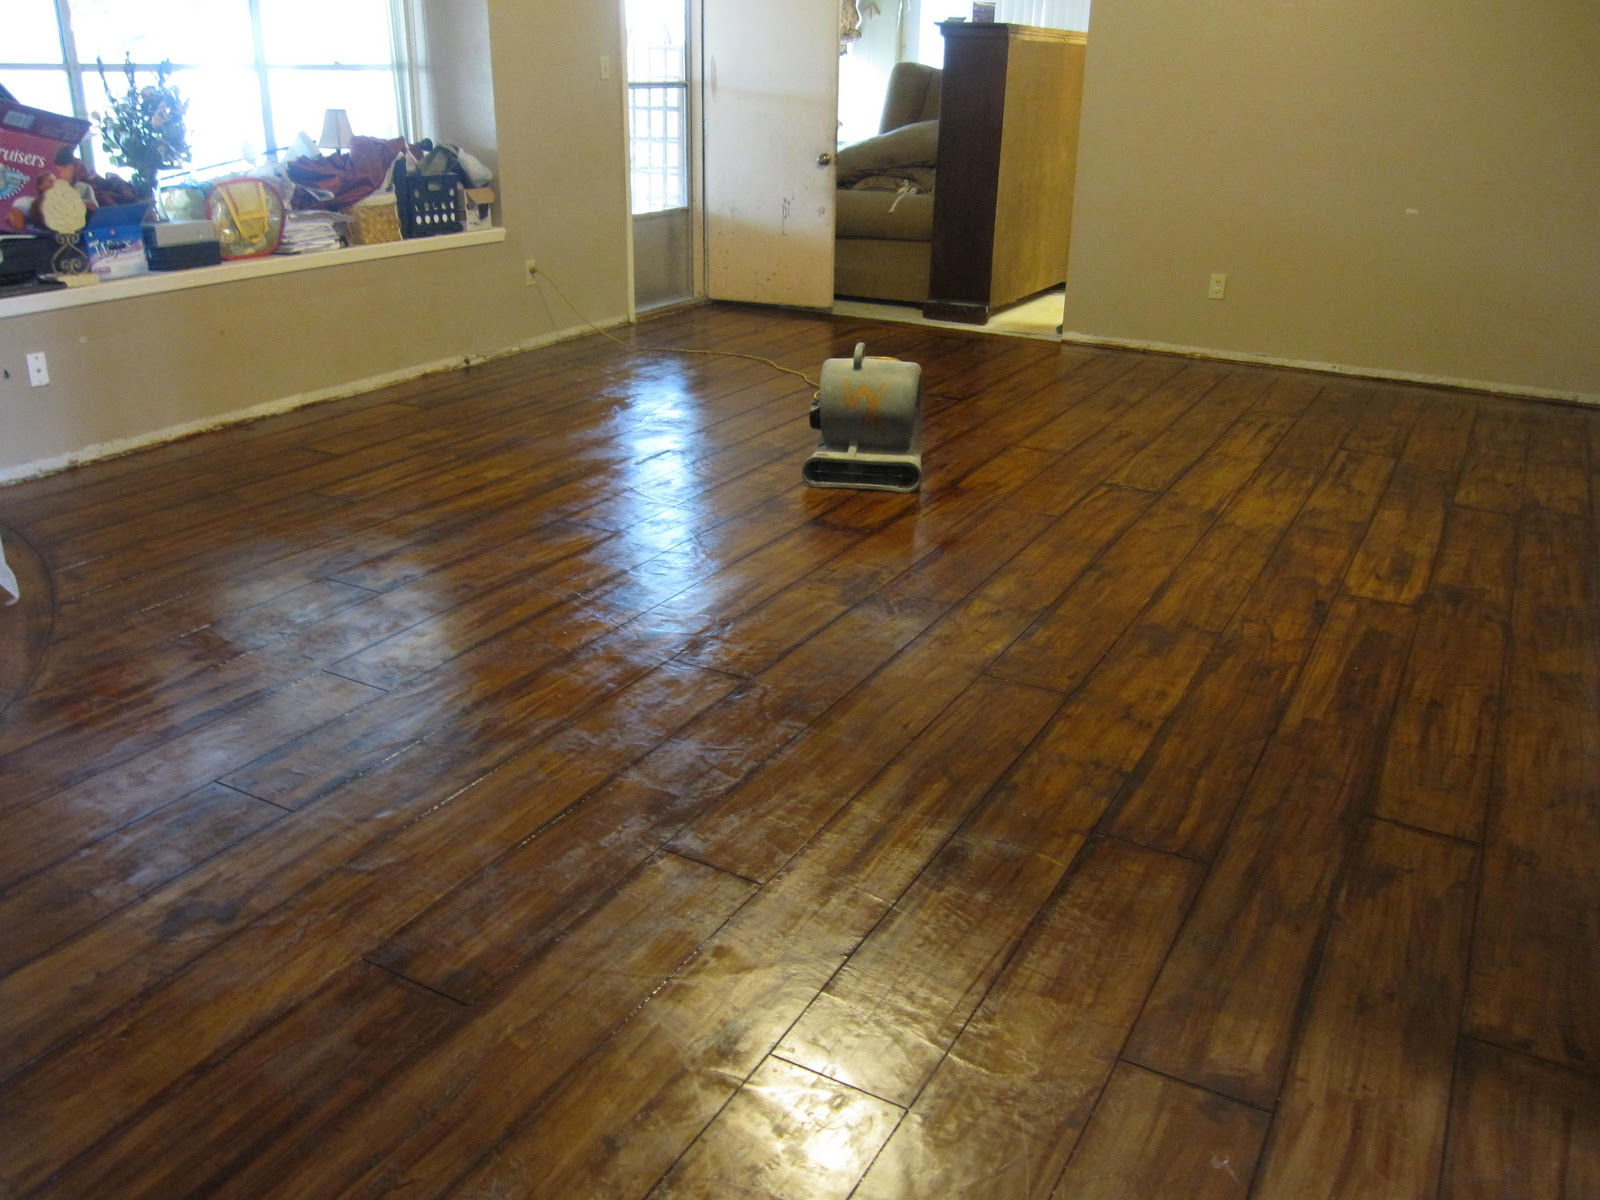 Painting Old Vinyl Flooring Decorative Concrete Floors